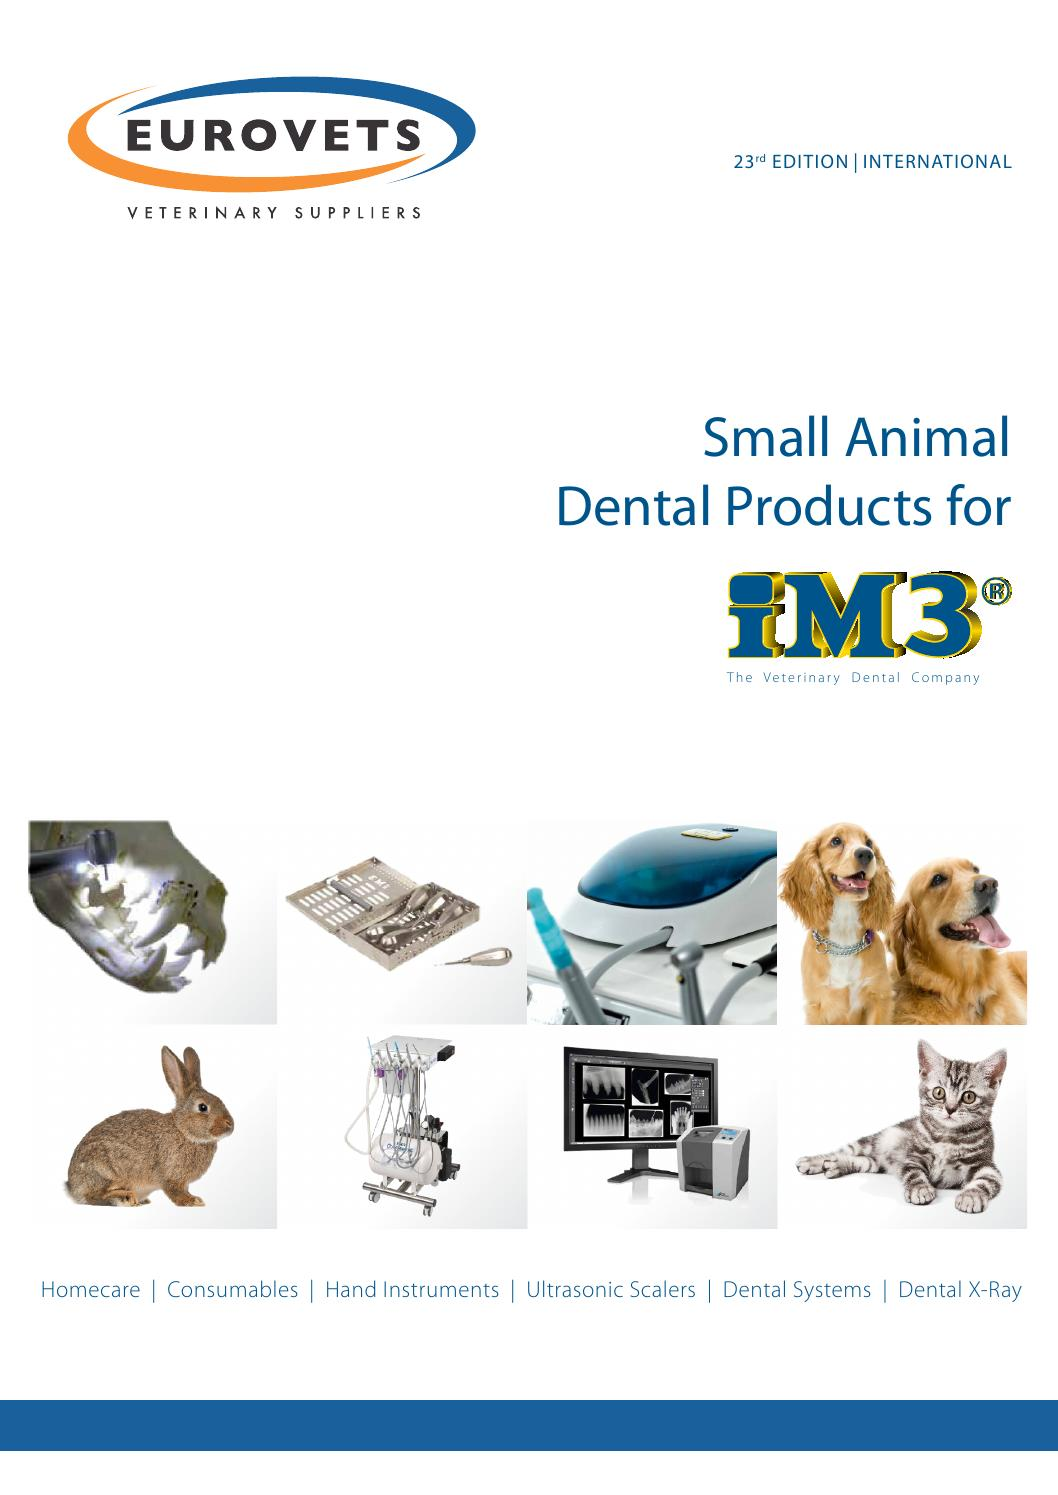 iM3 - Small animal dental products for by Eurovets Veterinary